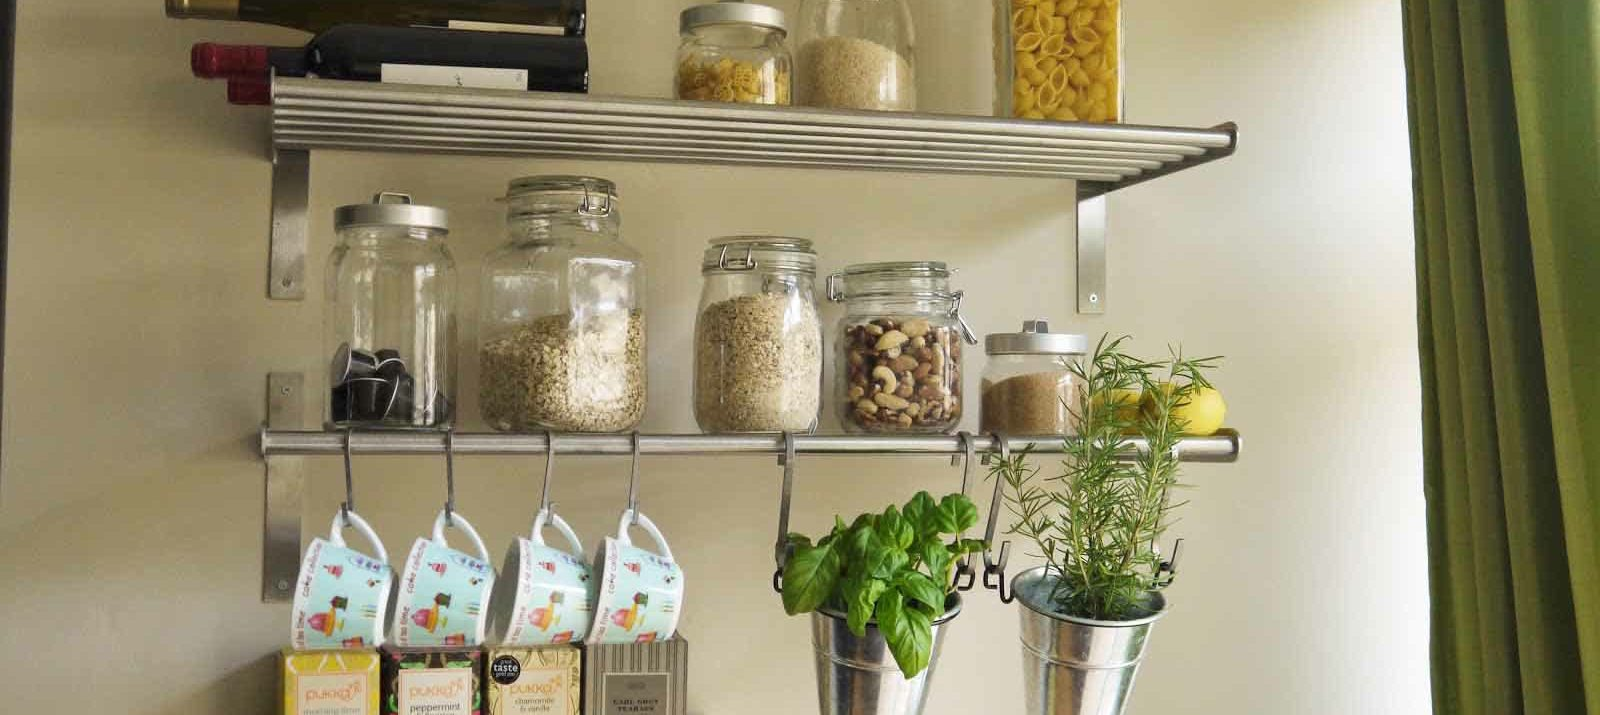 11 Clever And Easy Kitchen Organization Ideas You'll on tv for kitchen ideas, wall for kitchen ideas, shelf garage ideas, shelf bar ideas, cabinets for kitchen ideas, lighting for kitchen ideas, shelf decorating ideas, hutch for kitchen ideas, storage for kitchen ideas, shelf garden ideas, countertop for kitchen ideas,